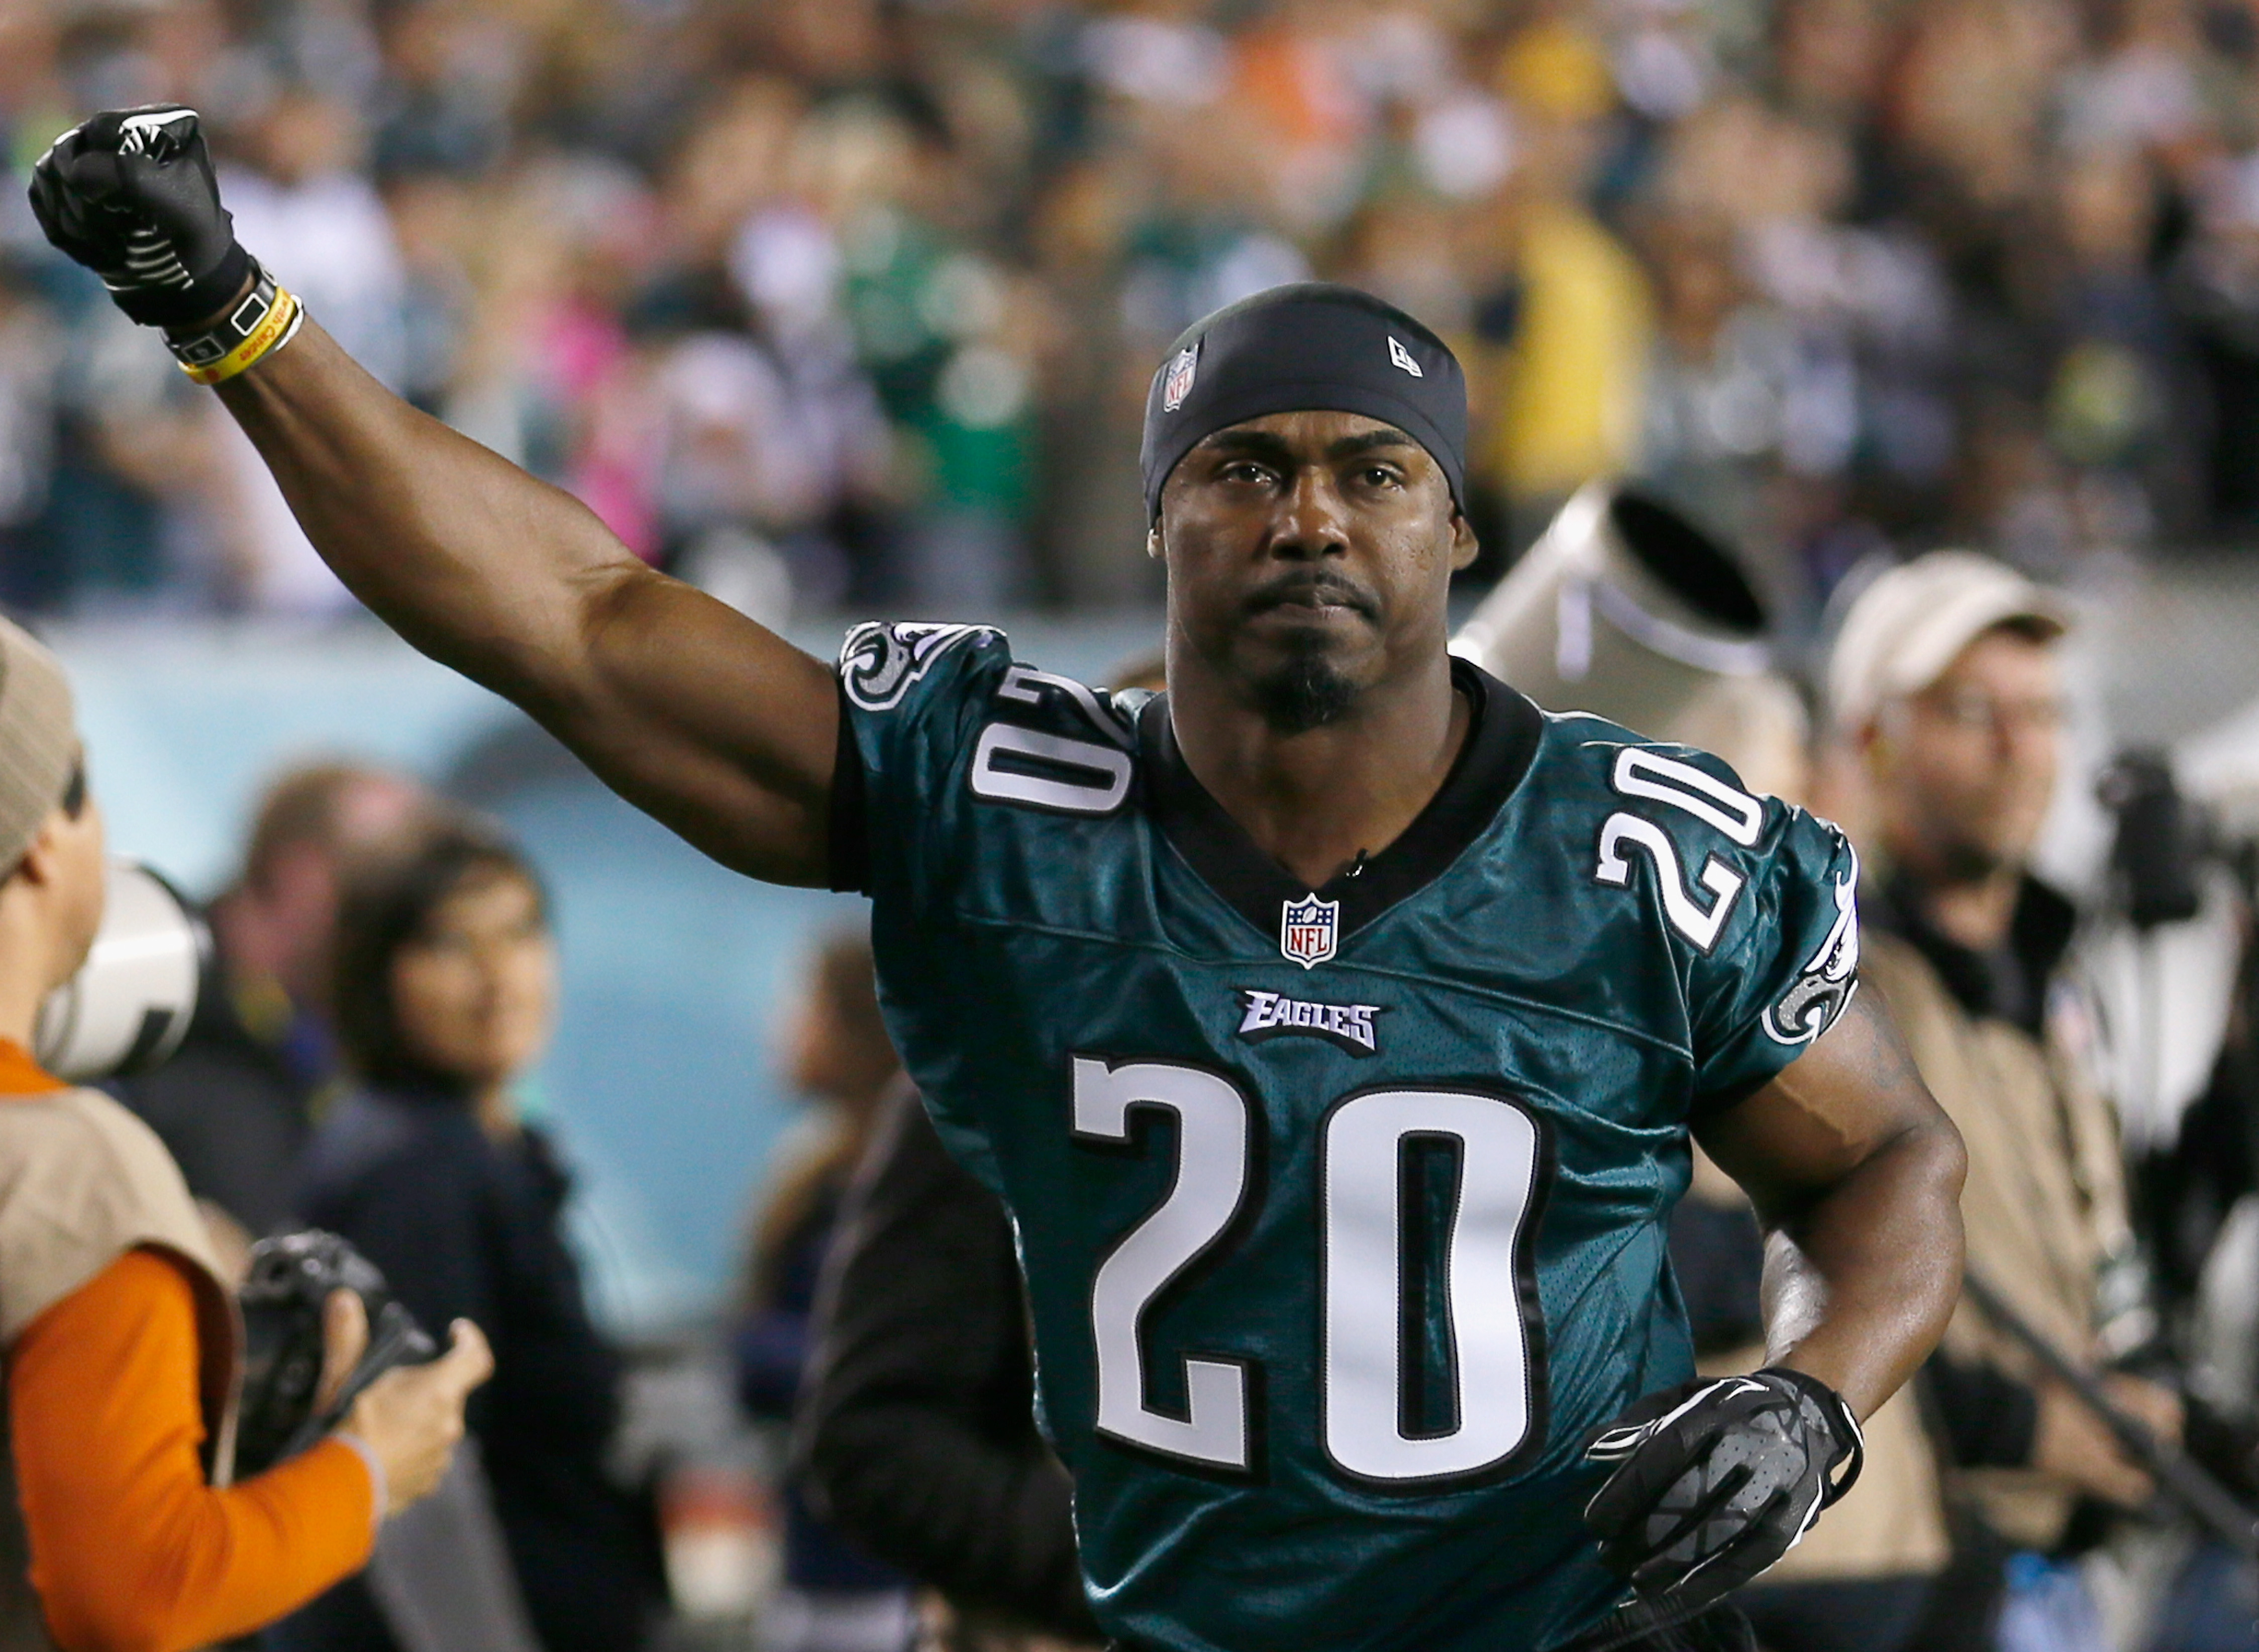 Eagles Weekly Recap: Week 11, contract extensions, Dawkins/HOF, and more